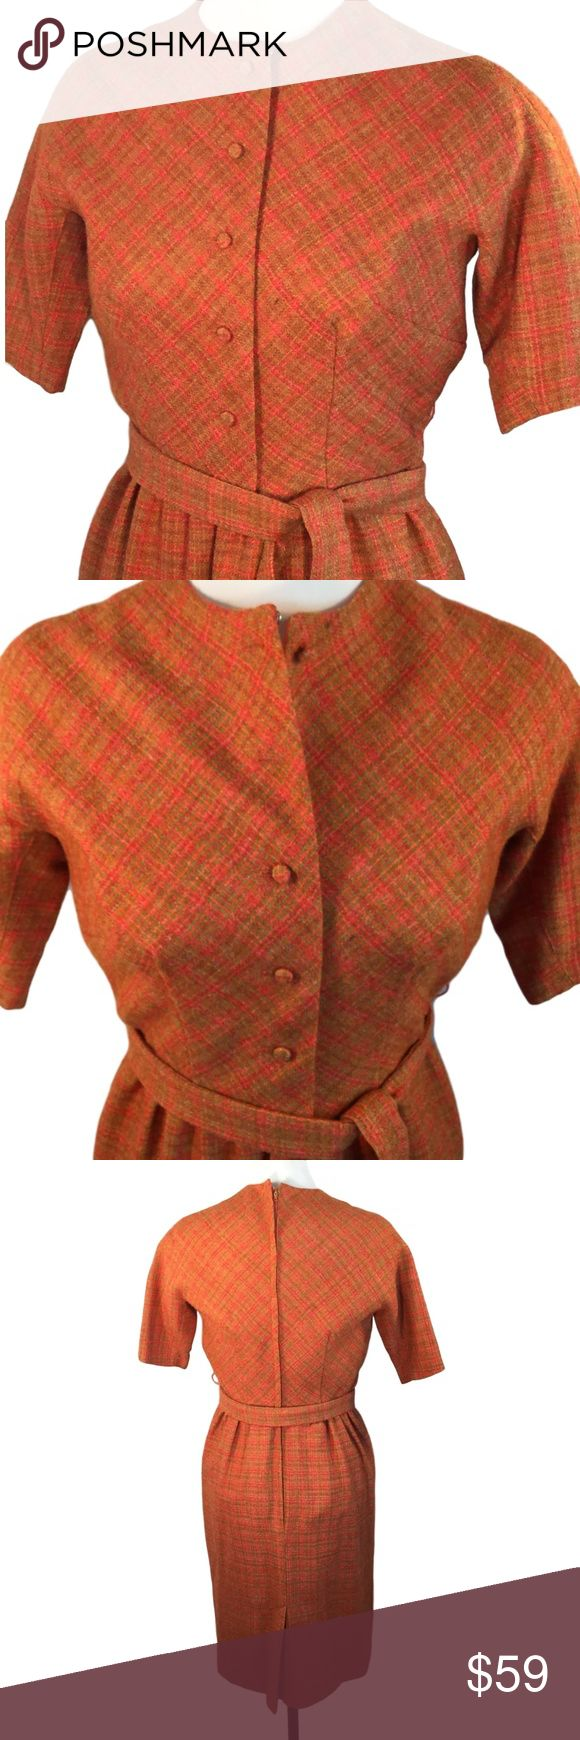 """60s Worsted Wool Fitted Bodice Dress Belt Tie S E.T. Jrs  Orange Tweed Worsted Wool Blend Dress Fitted button front bodice and matching tie belt Front has covered buttons, button front bodice  Metal Zippered Back 3/4 Dolman Sleeve Fully lined in bright orange and in very nice condition Small / pictured on size 6 mannequin and fits snug  Condition is very nice with no holes  ✂------measurements------- (all taken with the garment laying flat)  Chest 19""""  Length back to waist 16"""" to Hem 41""""…"""